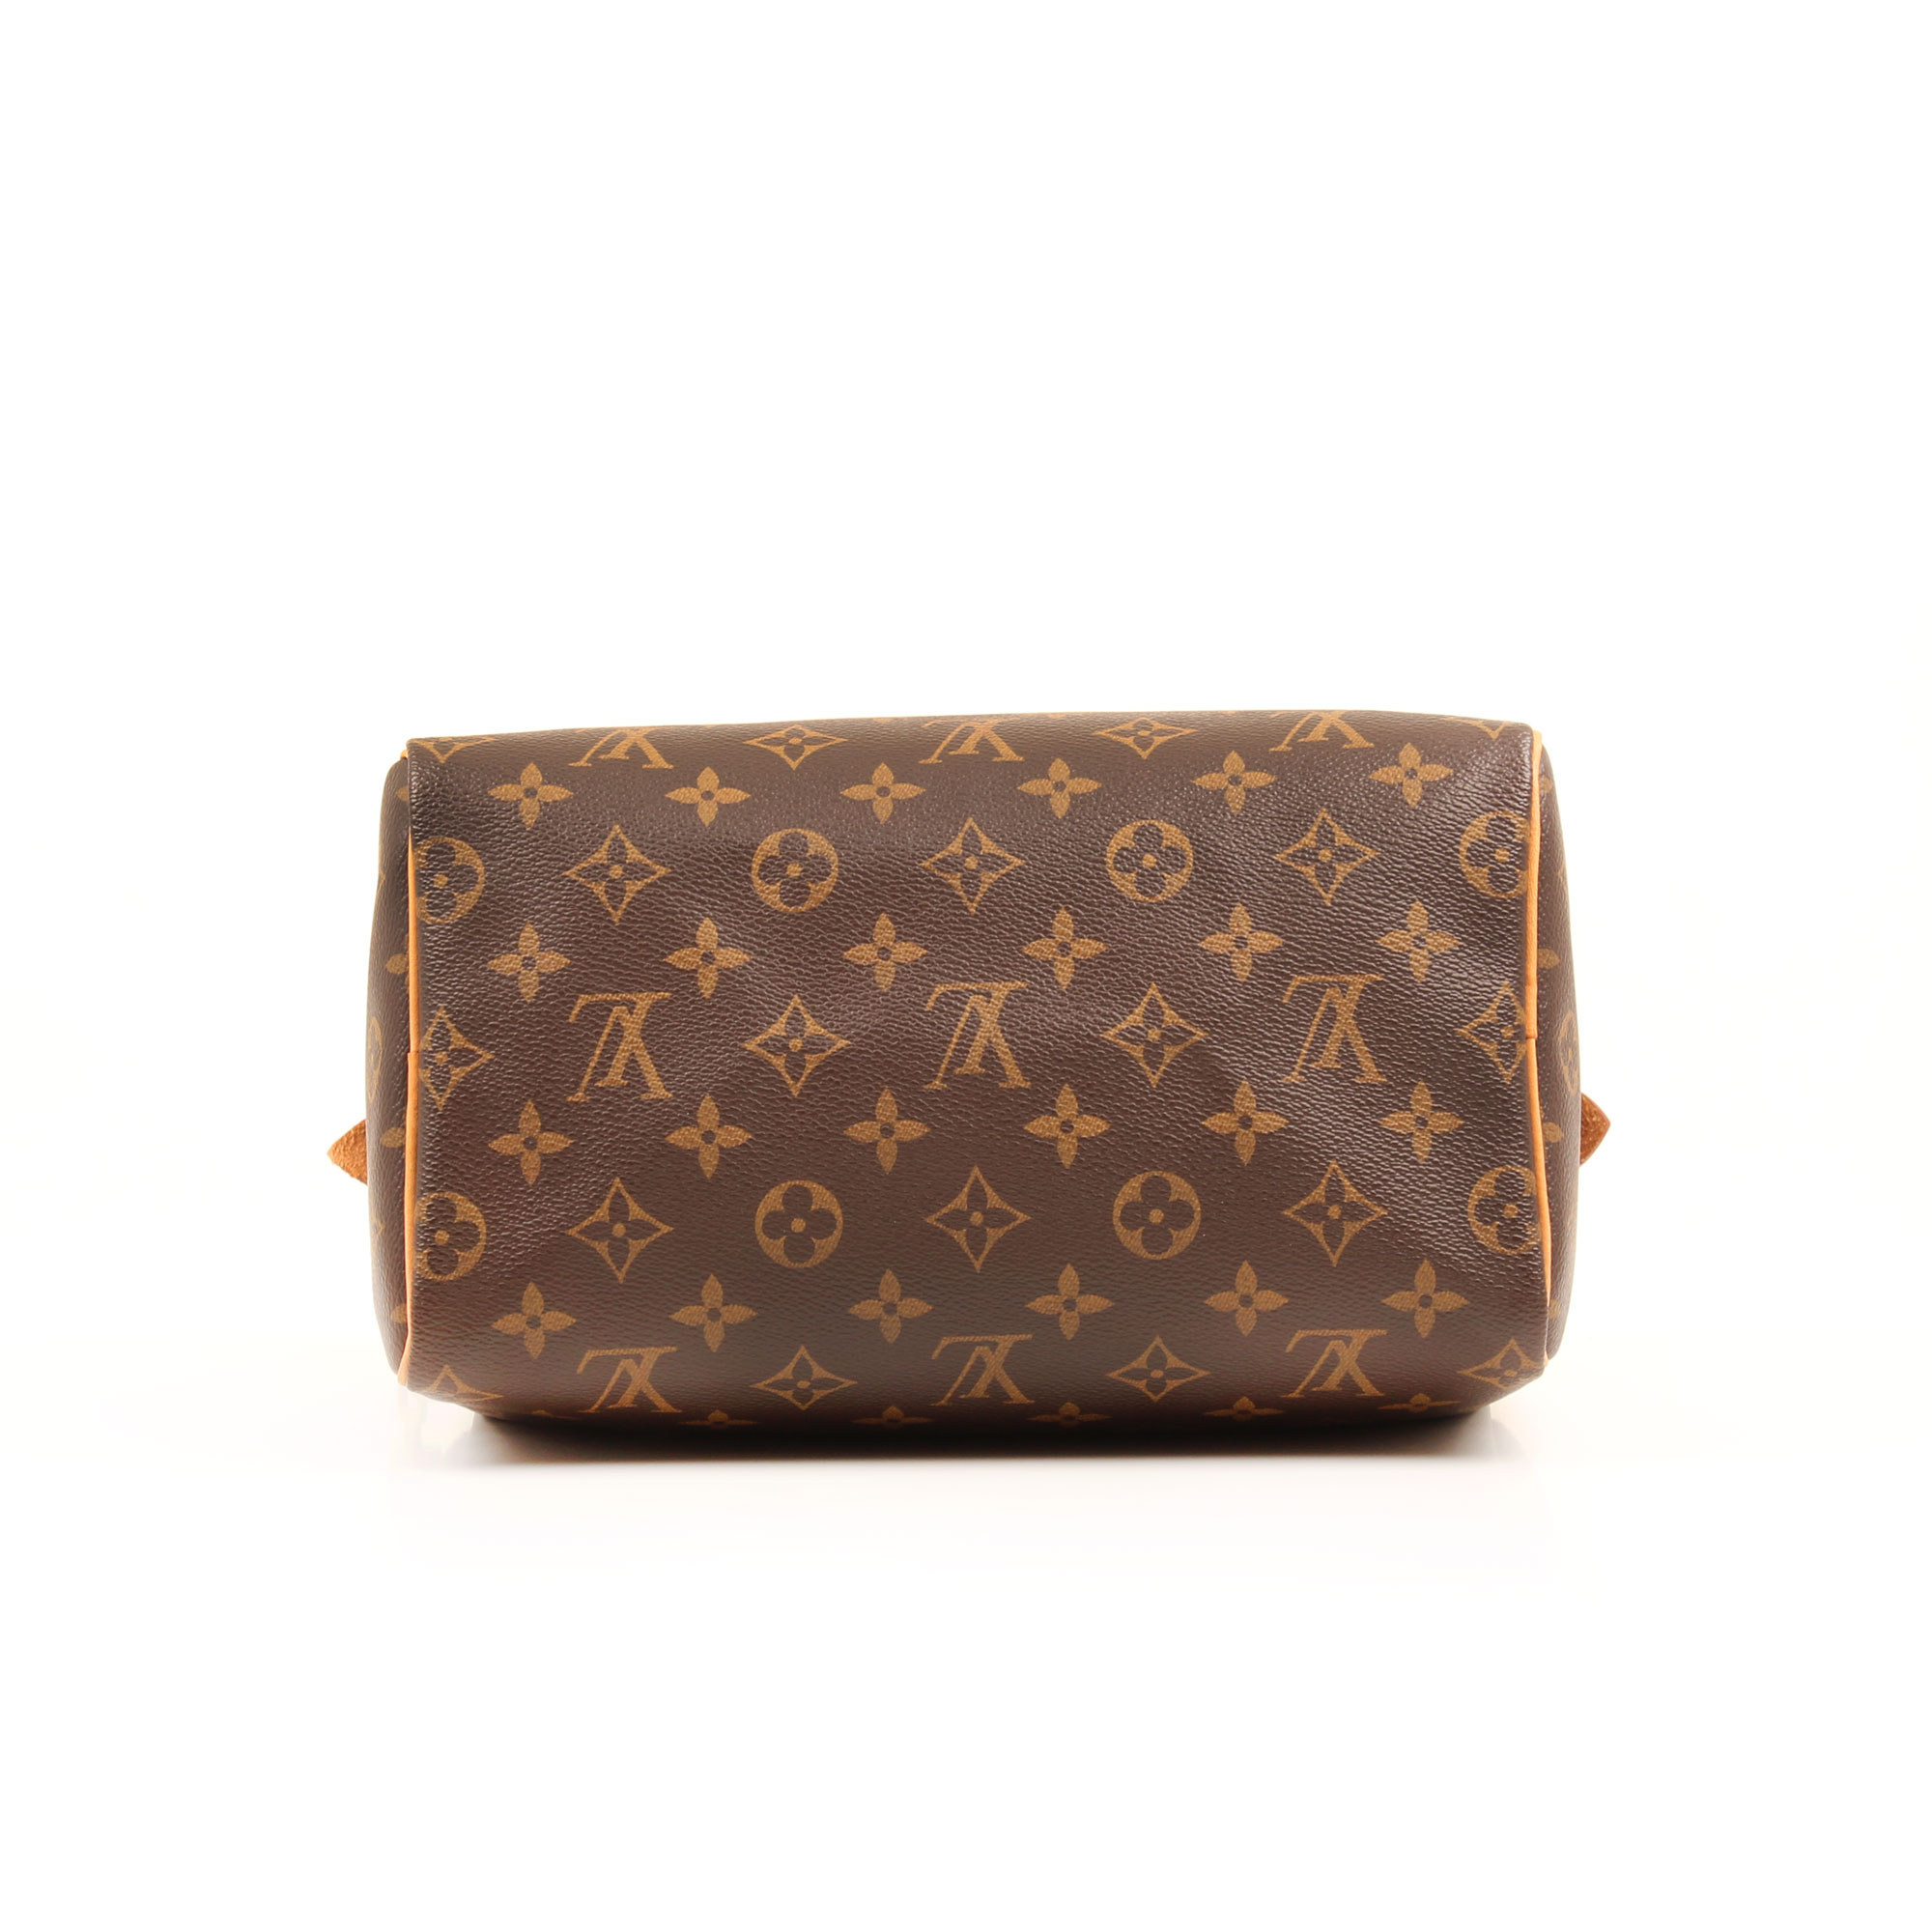 Imagen de la base del bolso louis vuitton speedy 25 monogram